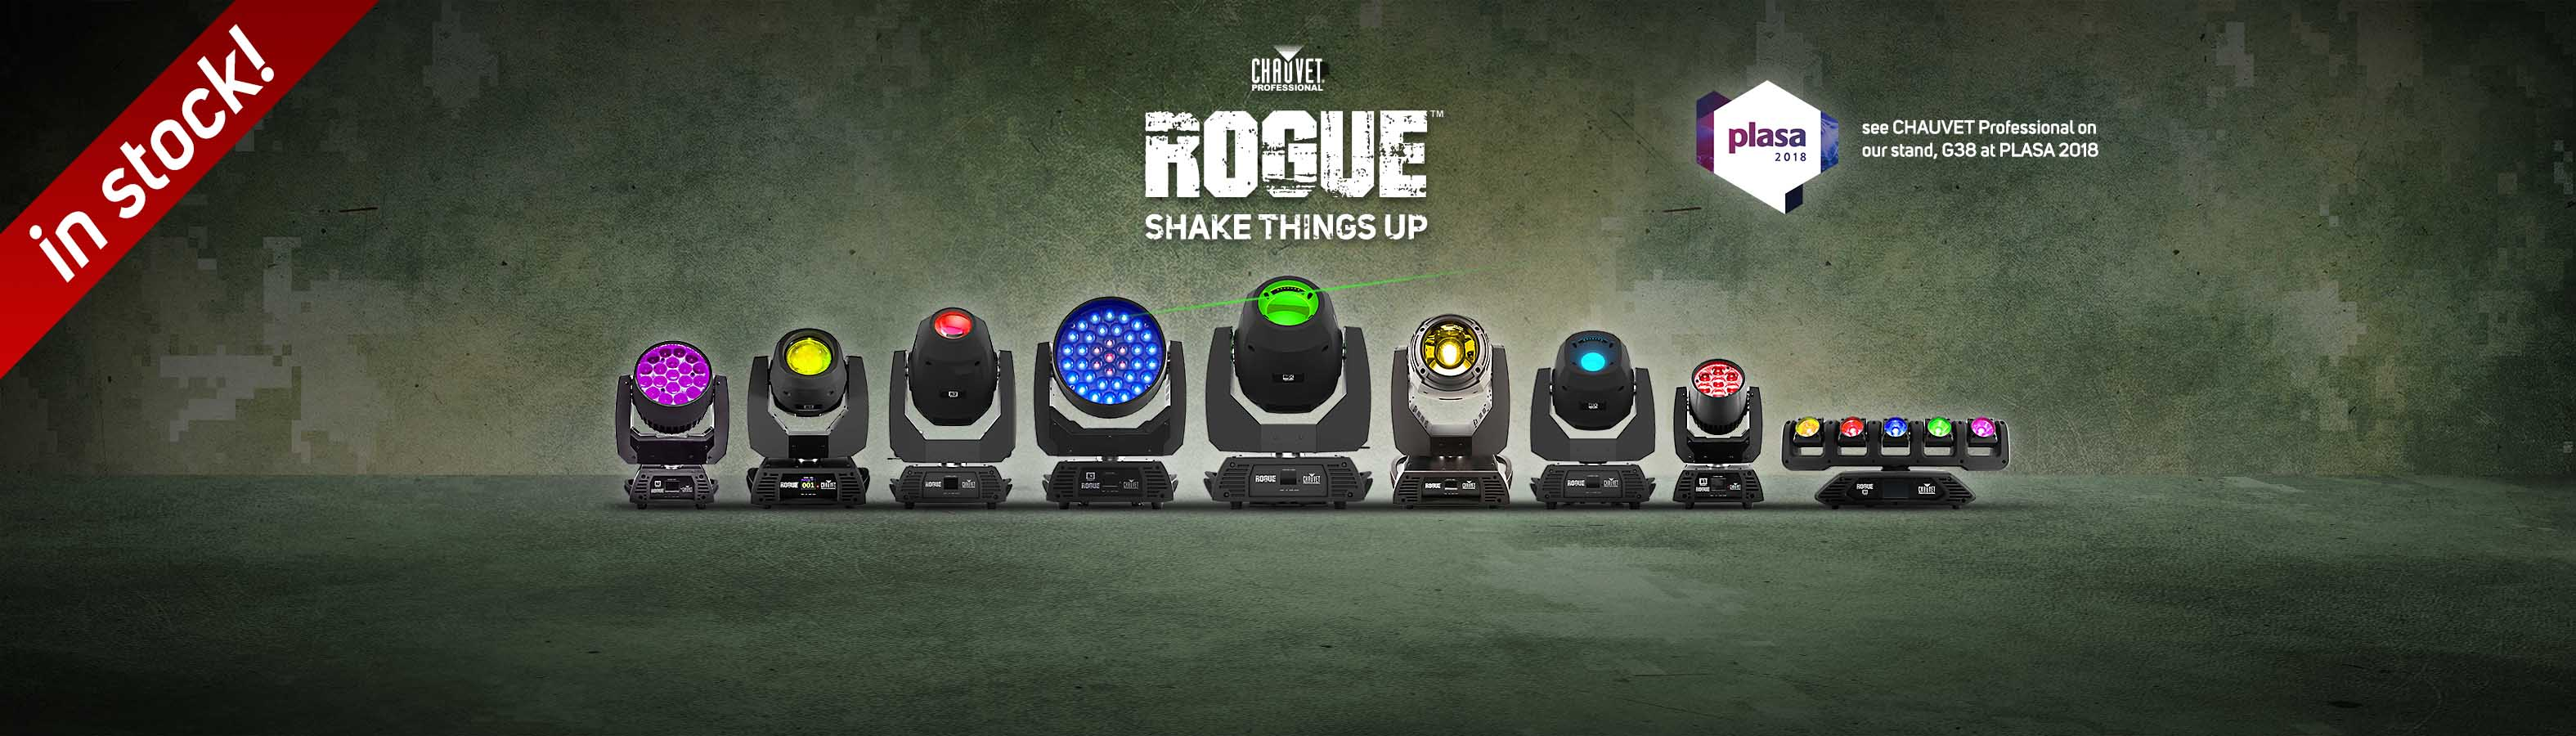 18-08-14 CHAUVET PRO - ROGUE in stock